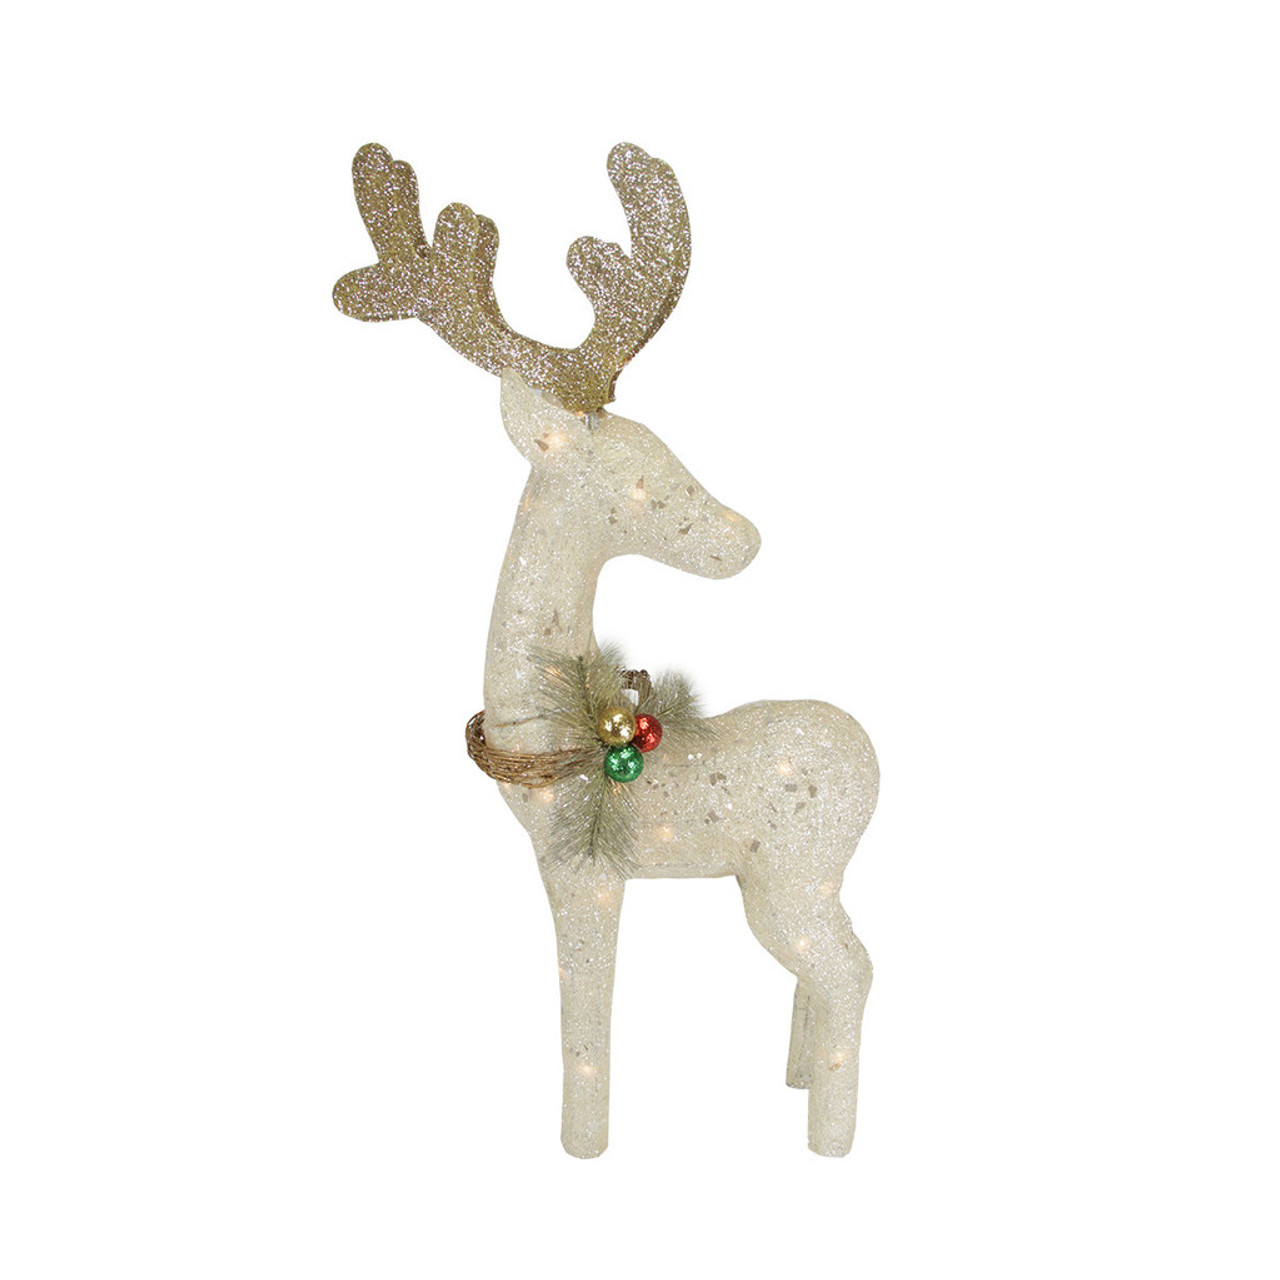 37 lighted sisal standing reindeer christmas outdoor decoration 31467160 - Lighted Animals Christmas Decoration